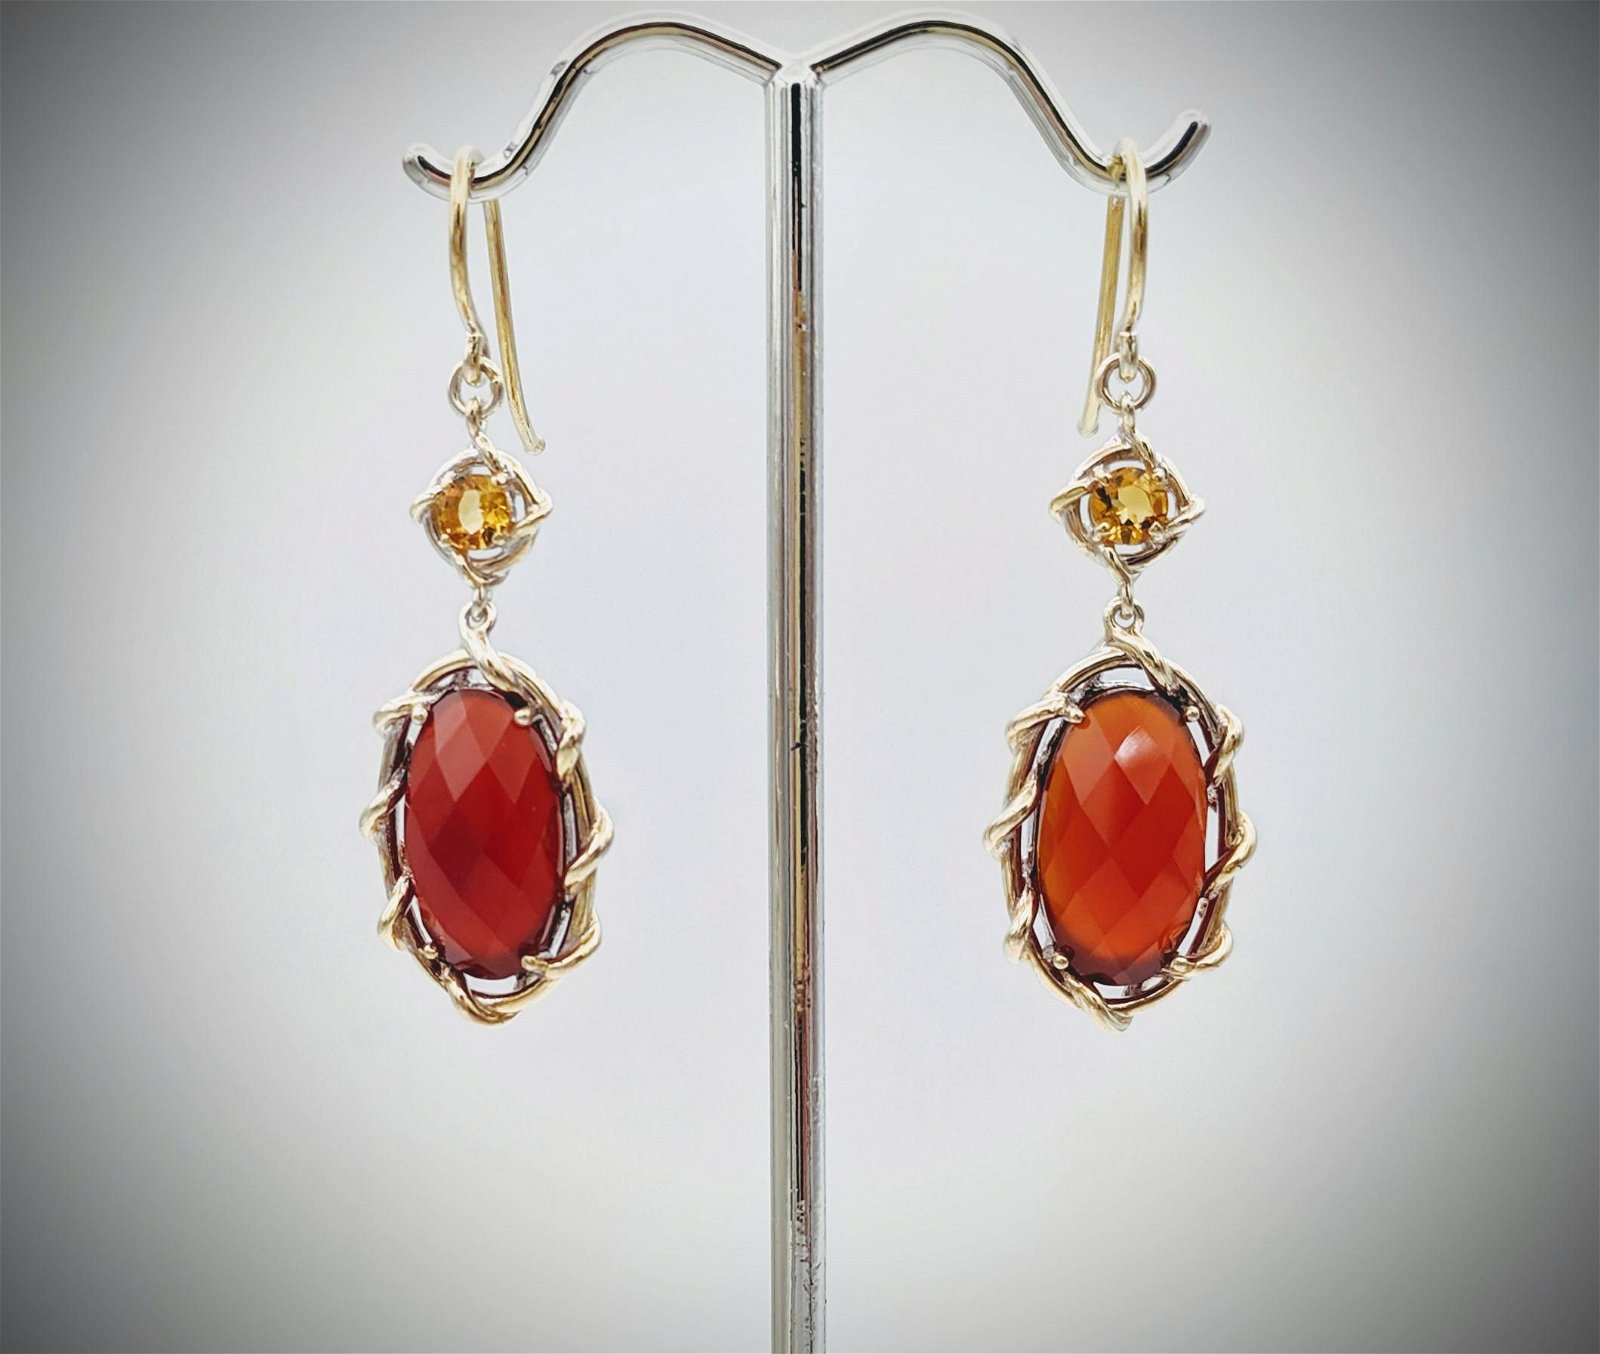 925 SS w Brushed Gold Plating Carnelian & Citrine